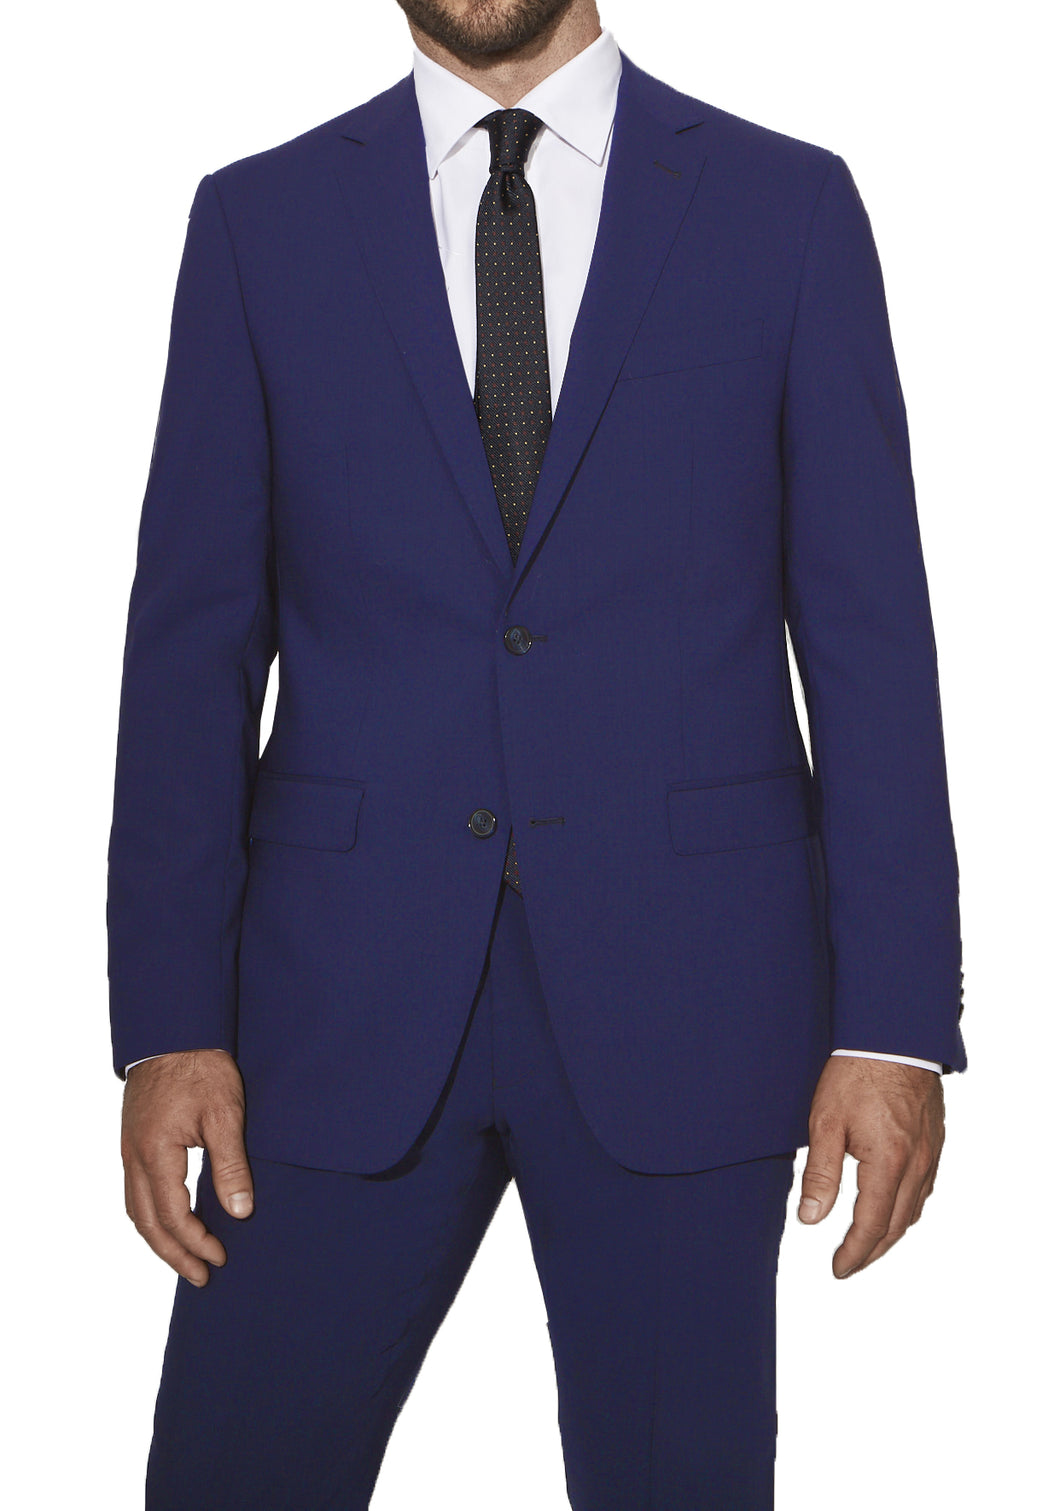 4J00SH - Hot Blue Smart Jacket